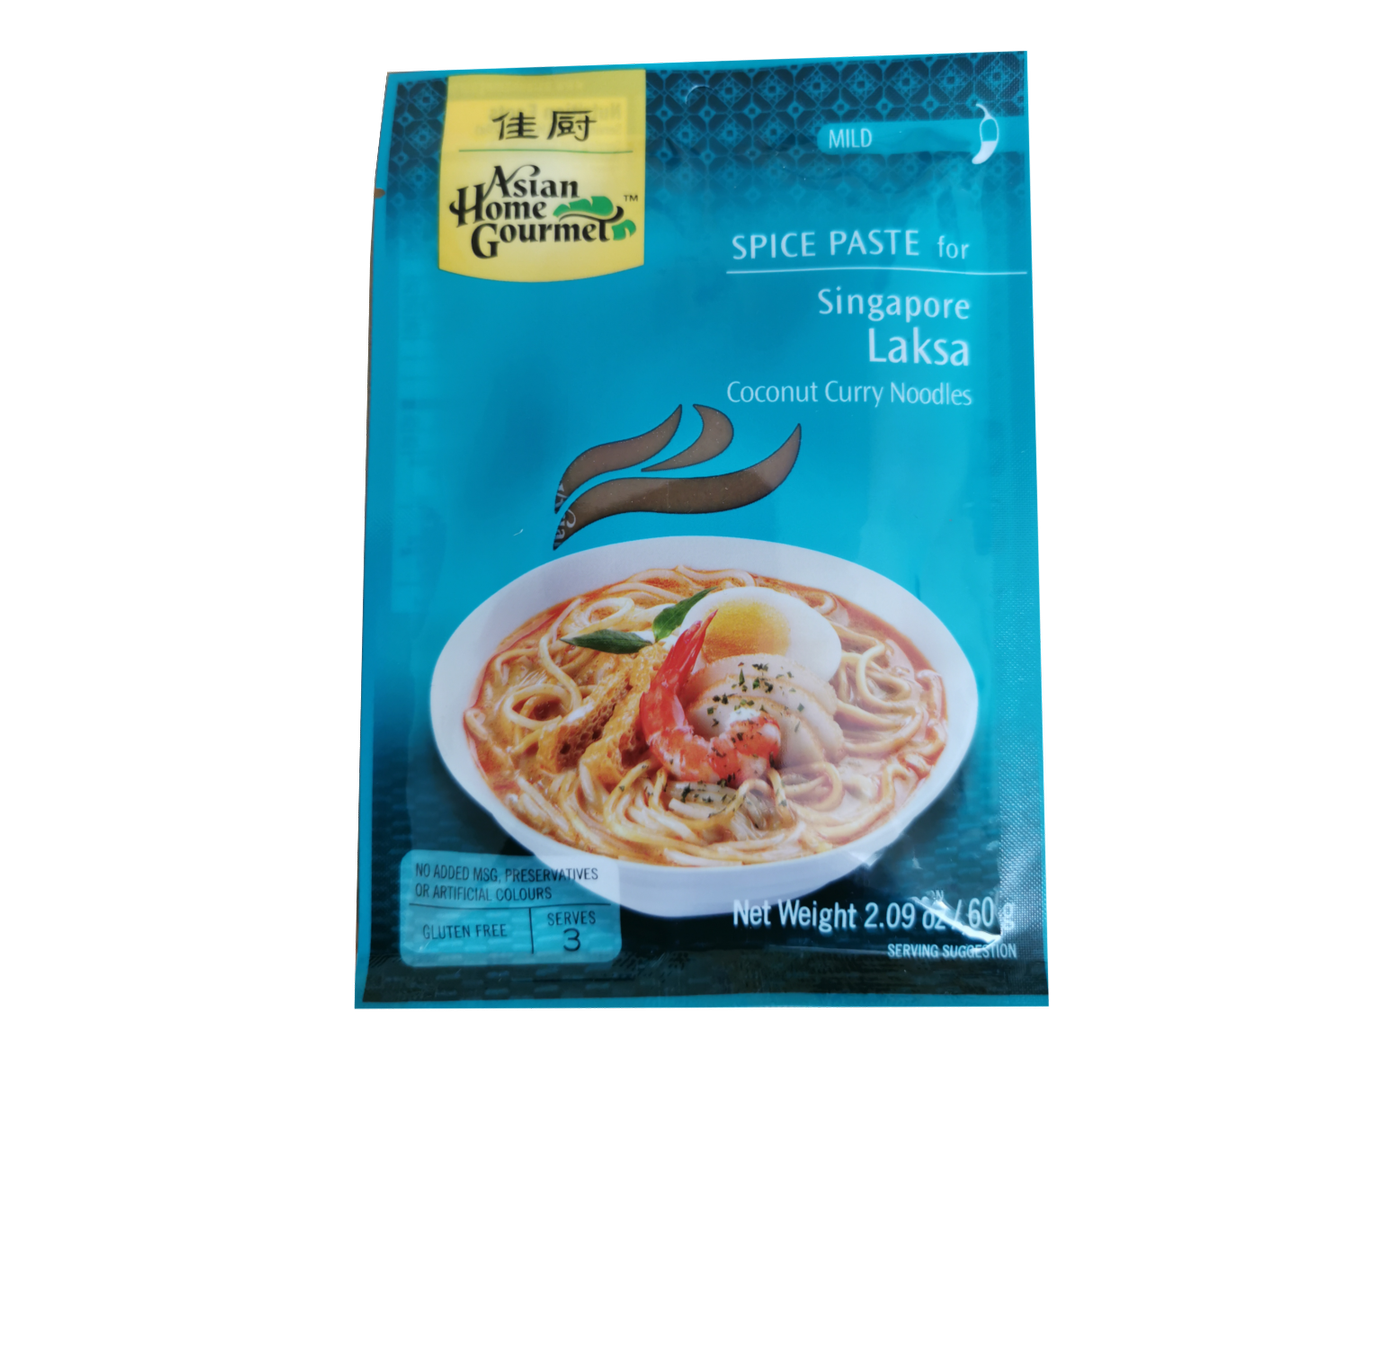 Asian Home Gourmet Singapore Laksa